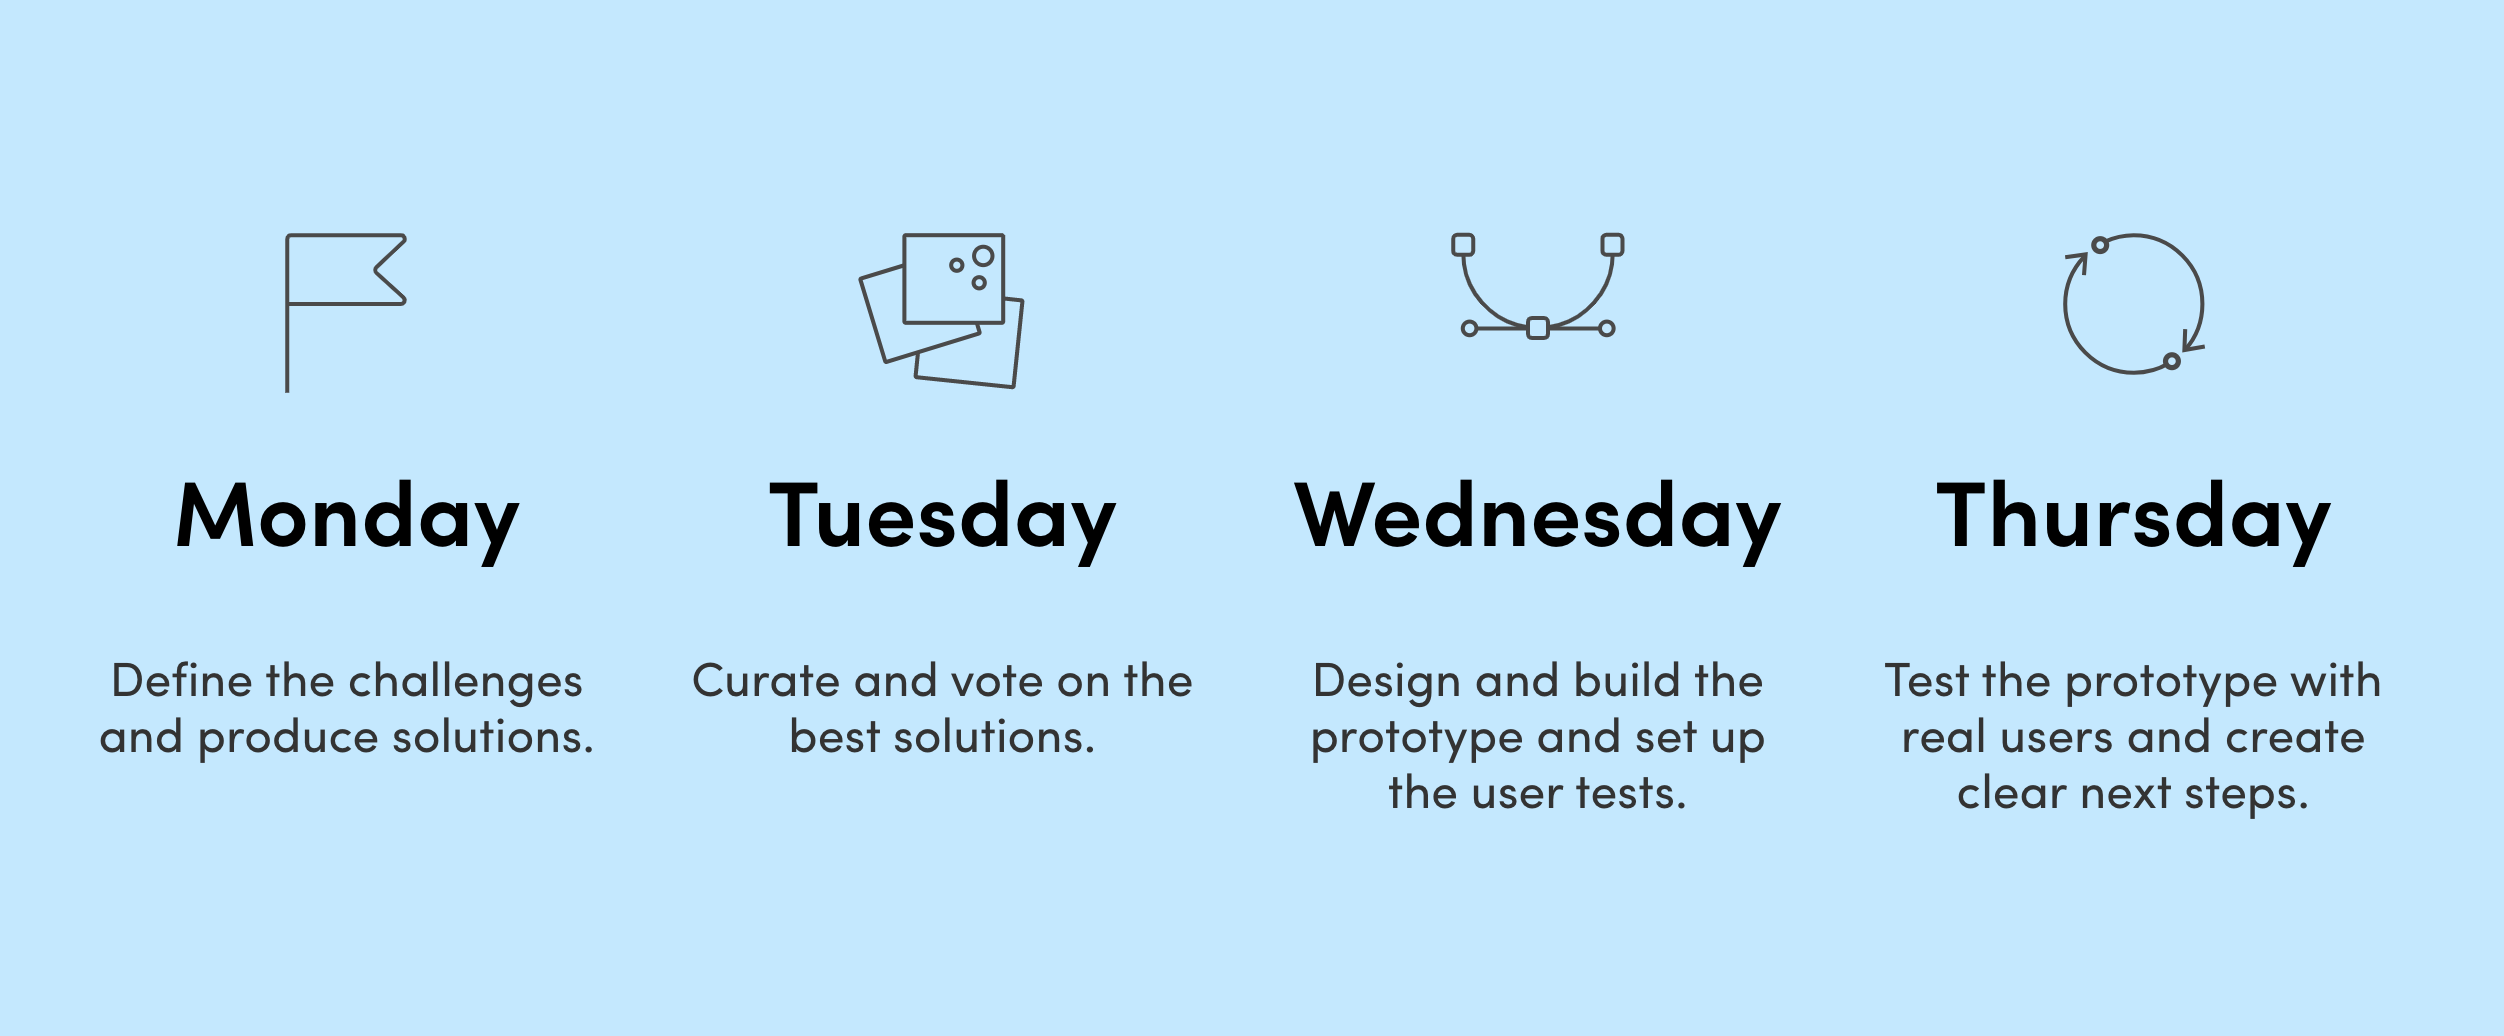 How to Create a Marketing Plan Using Design Sprint - UX Planet